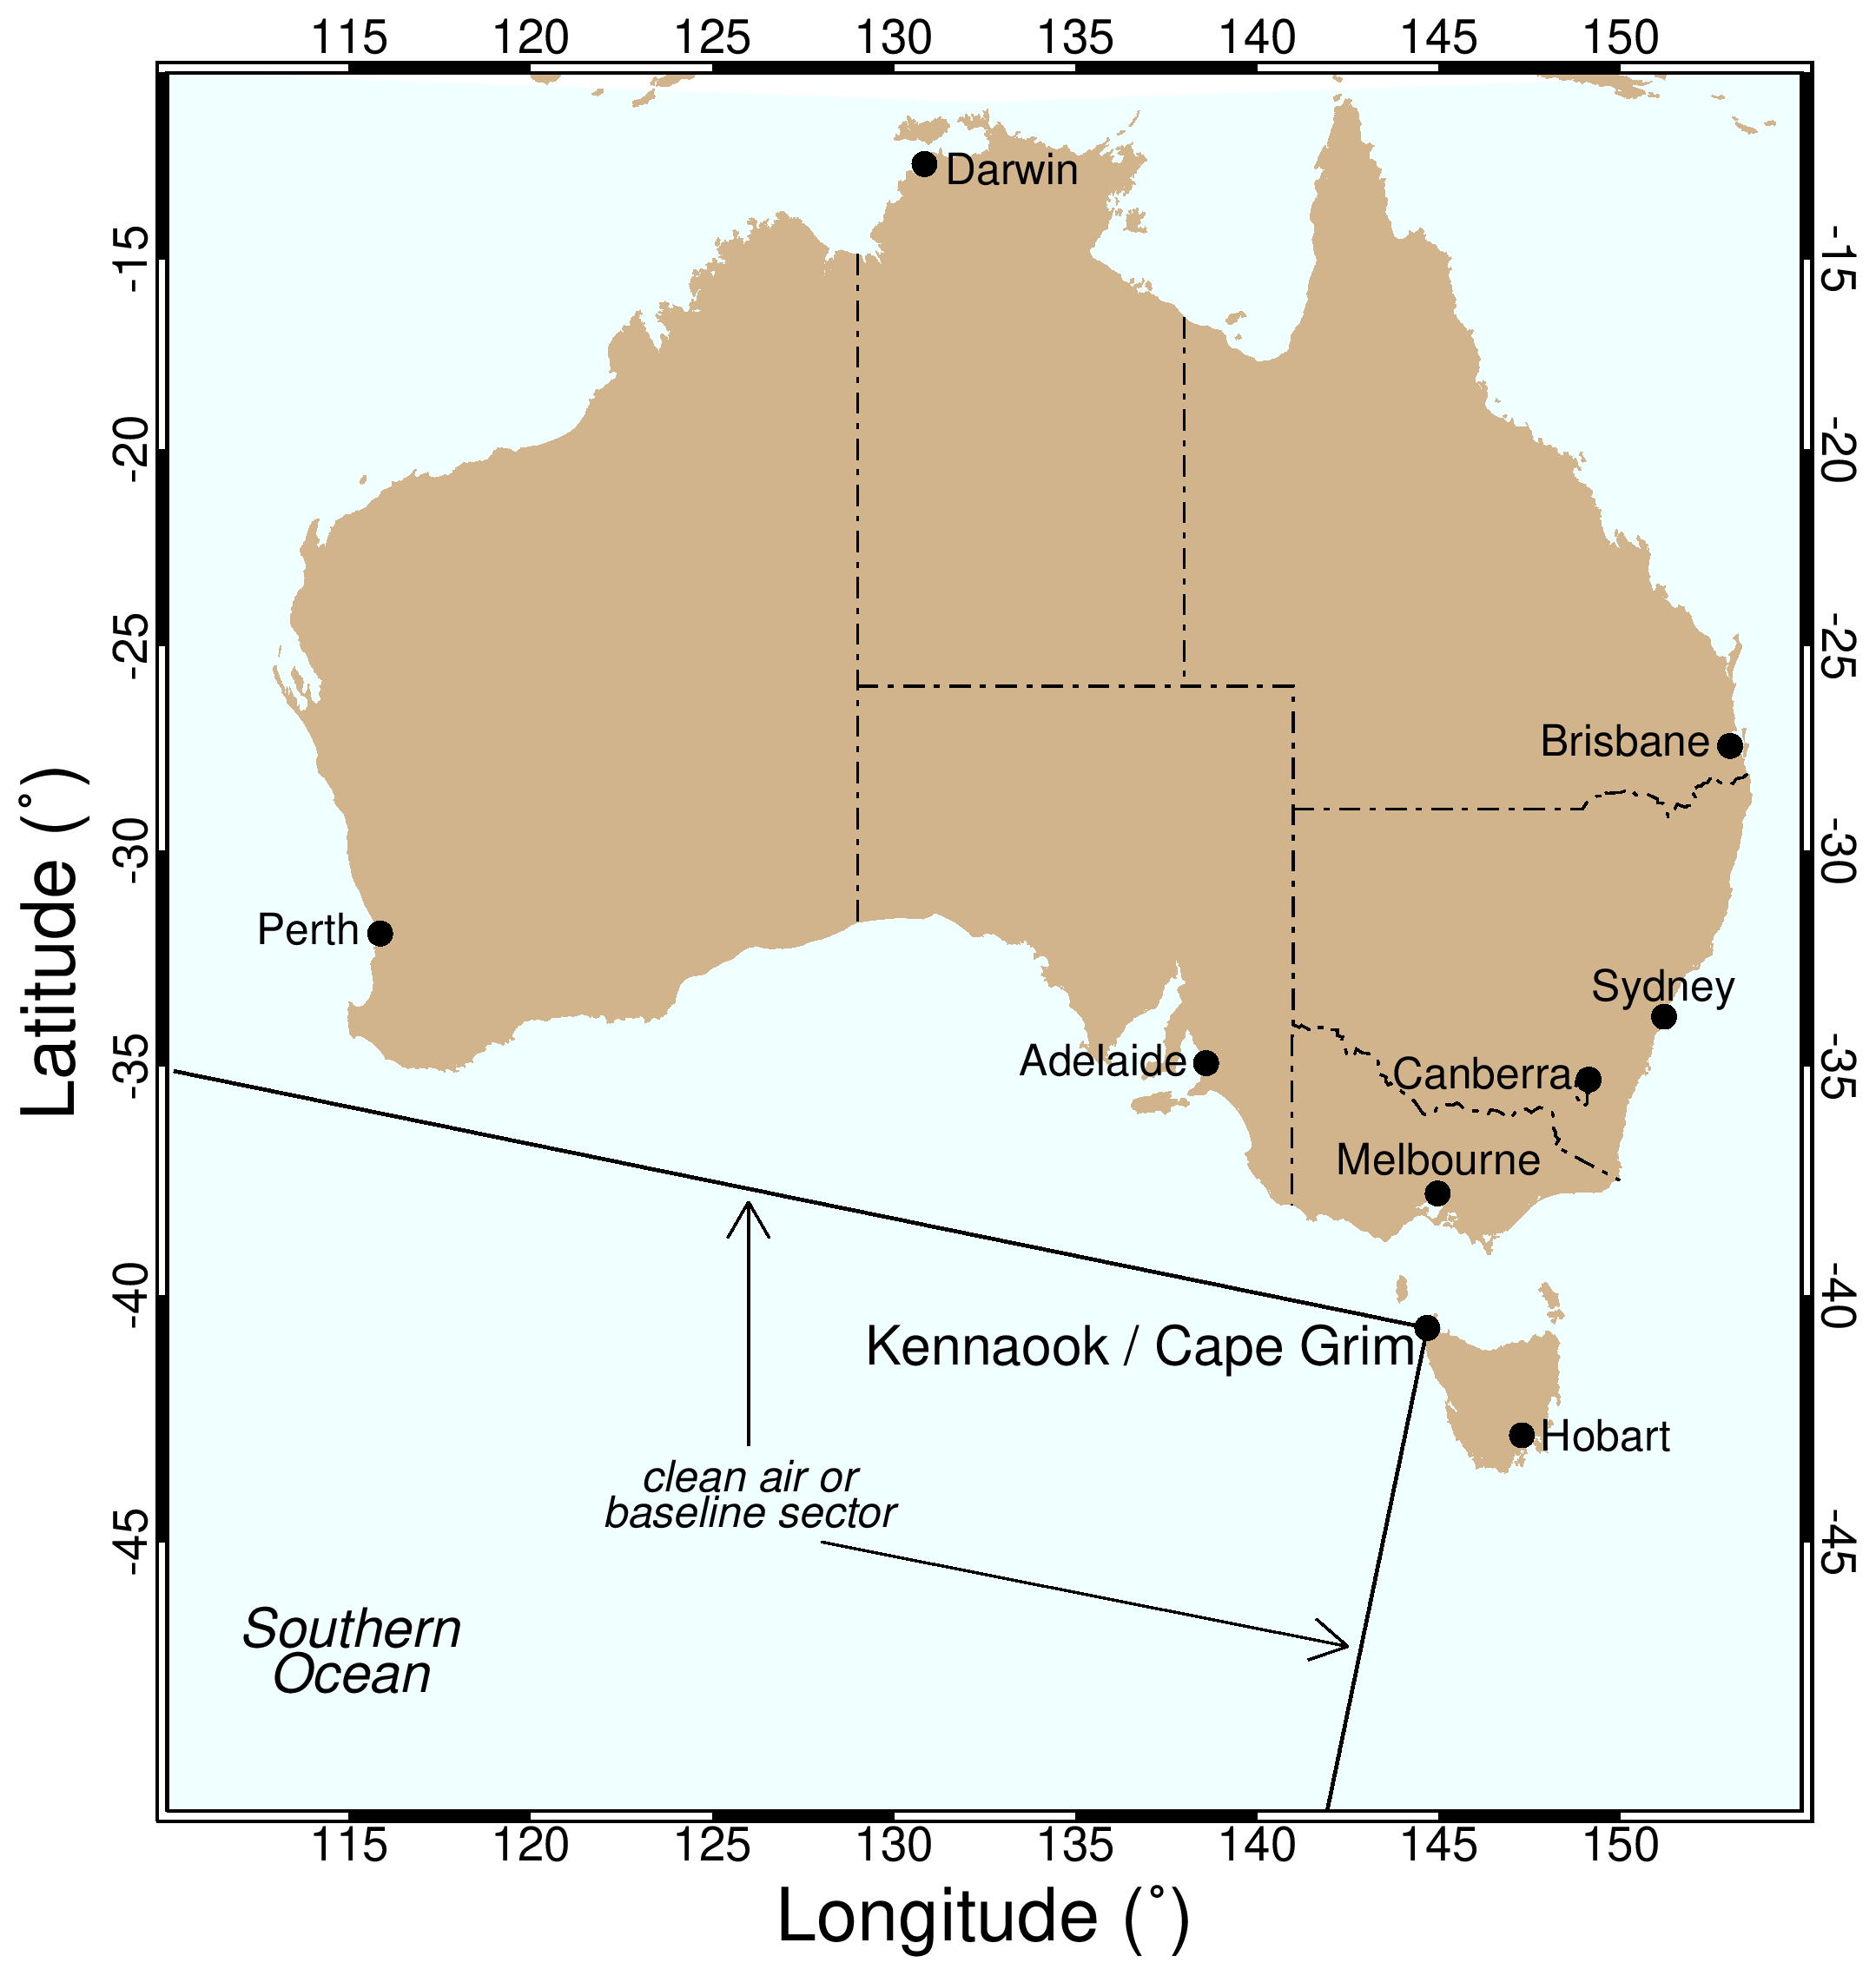 Map of Australia with the Cape Grim air sampling station identified.